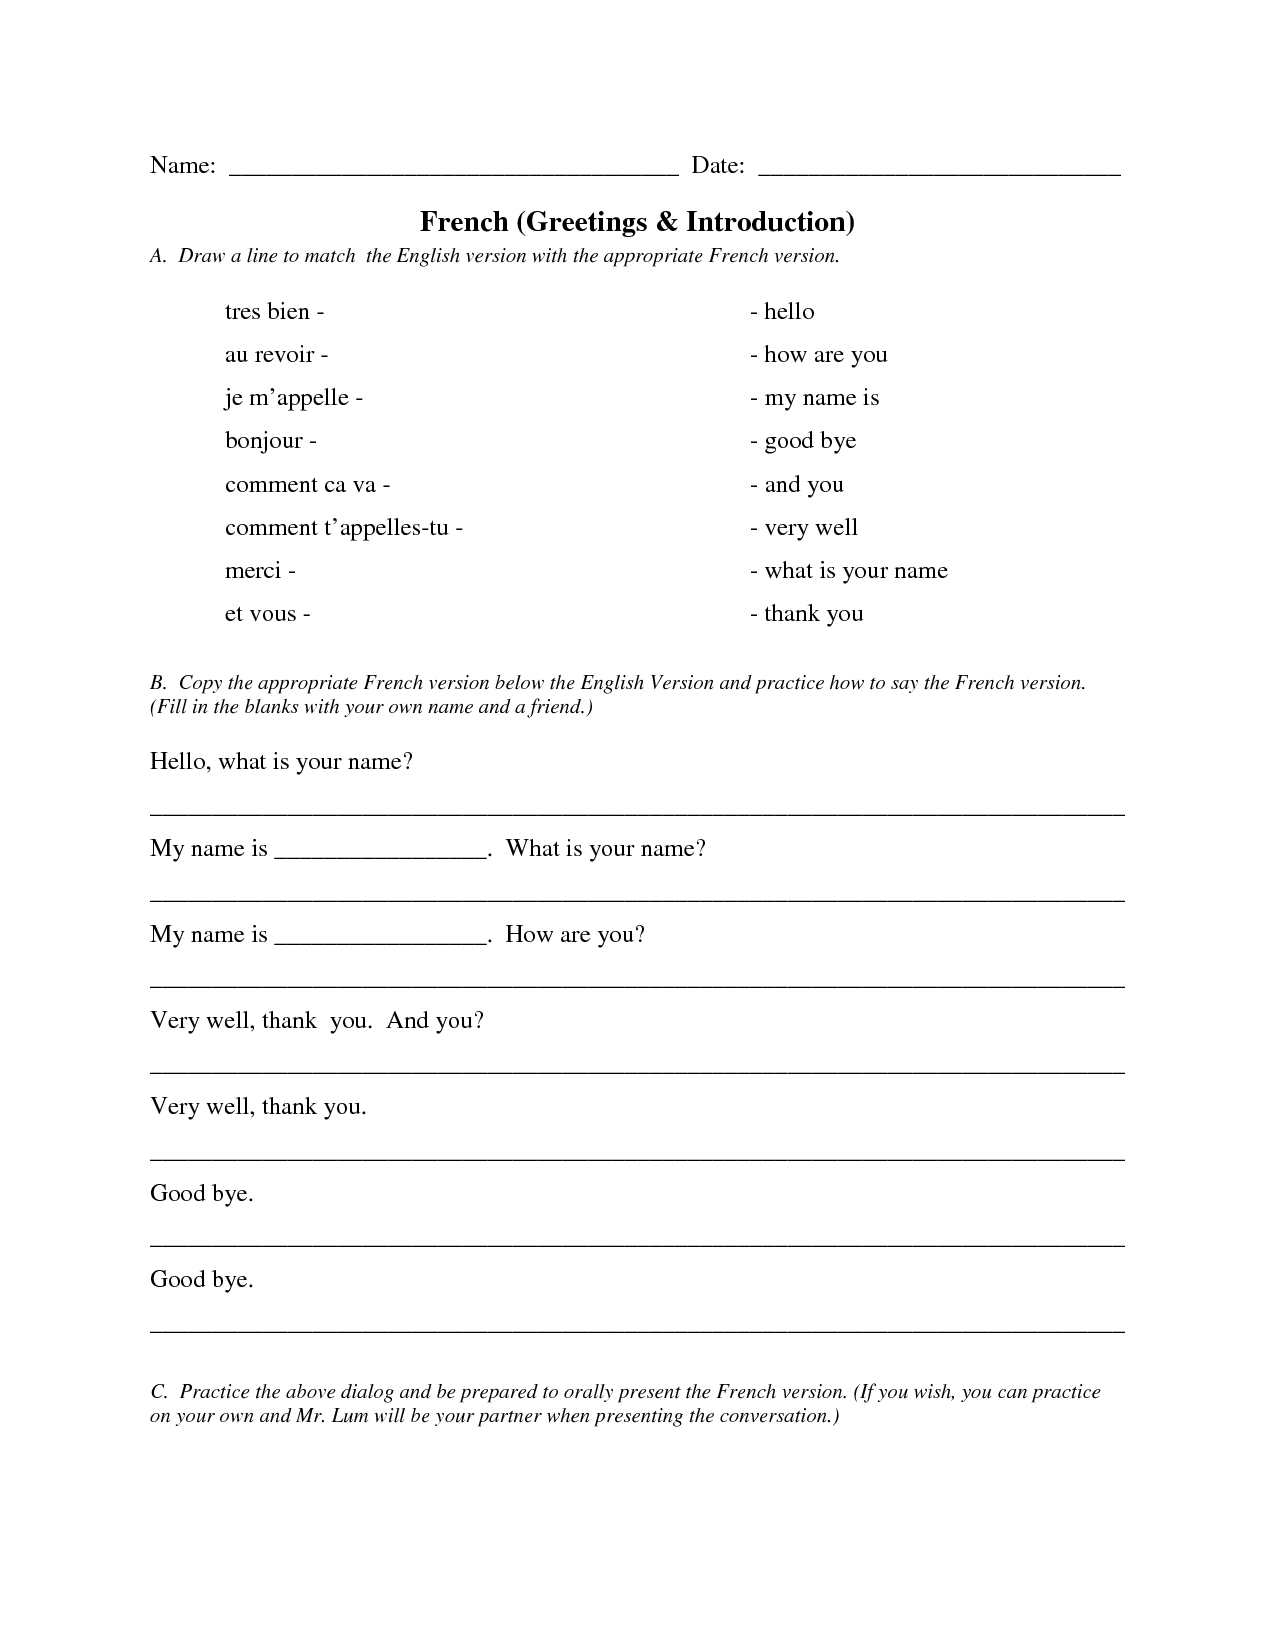 My Self Introduction Worksheet